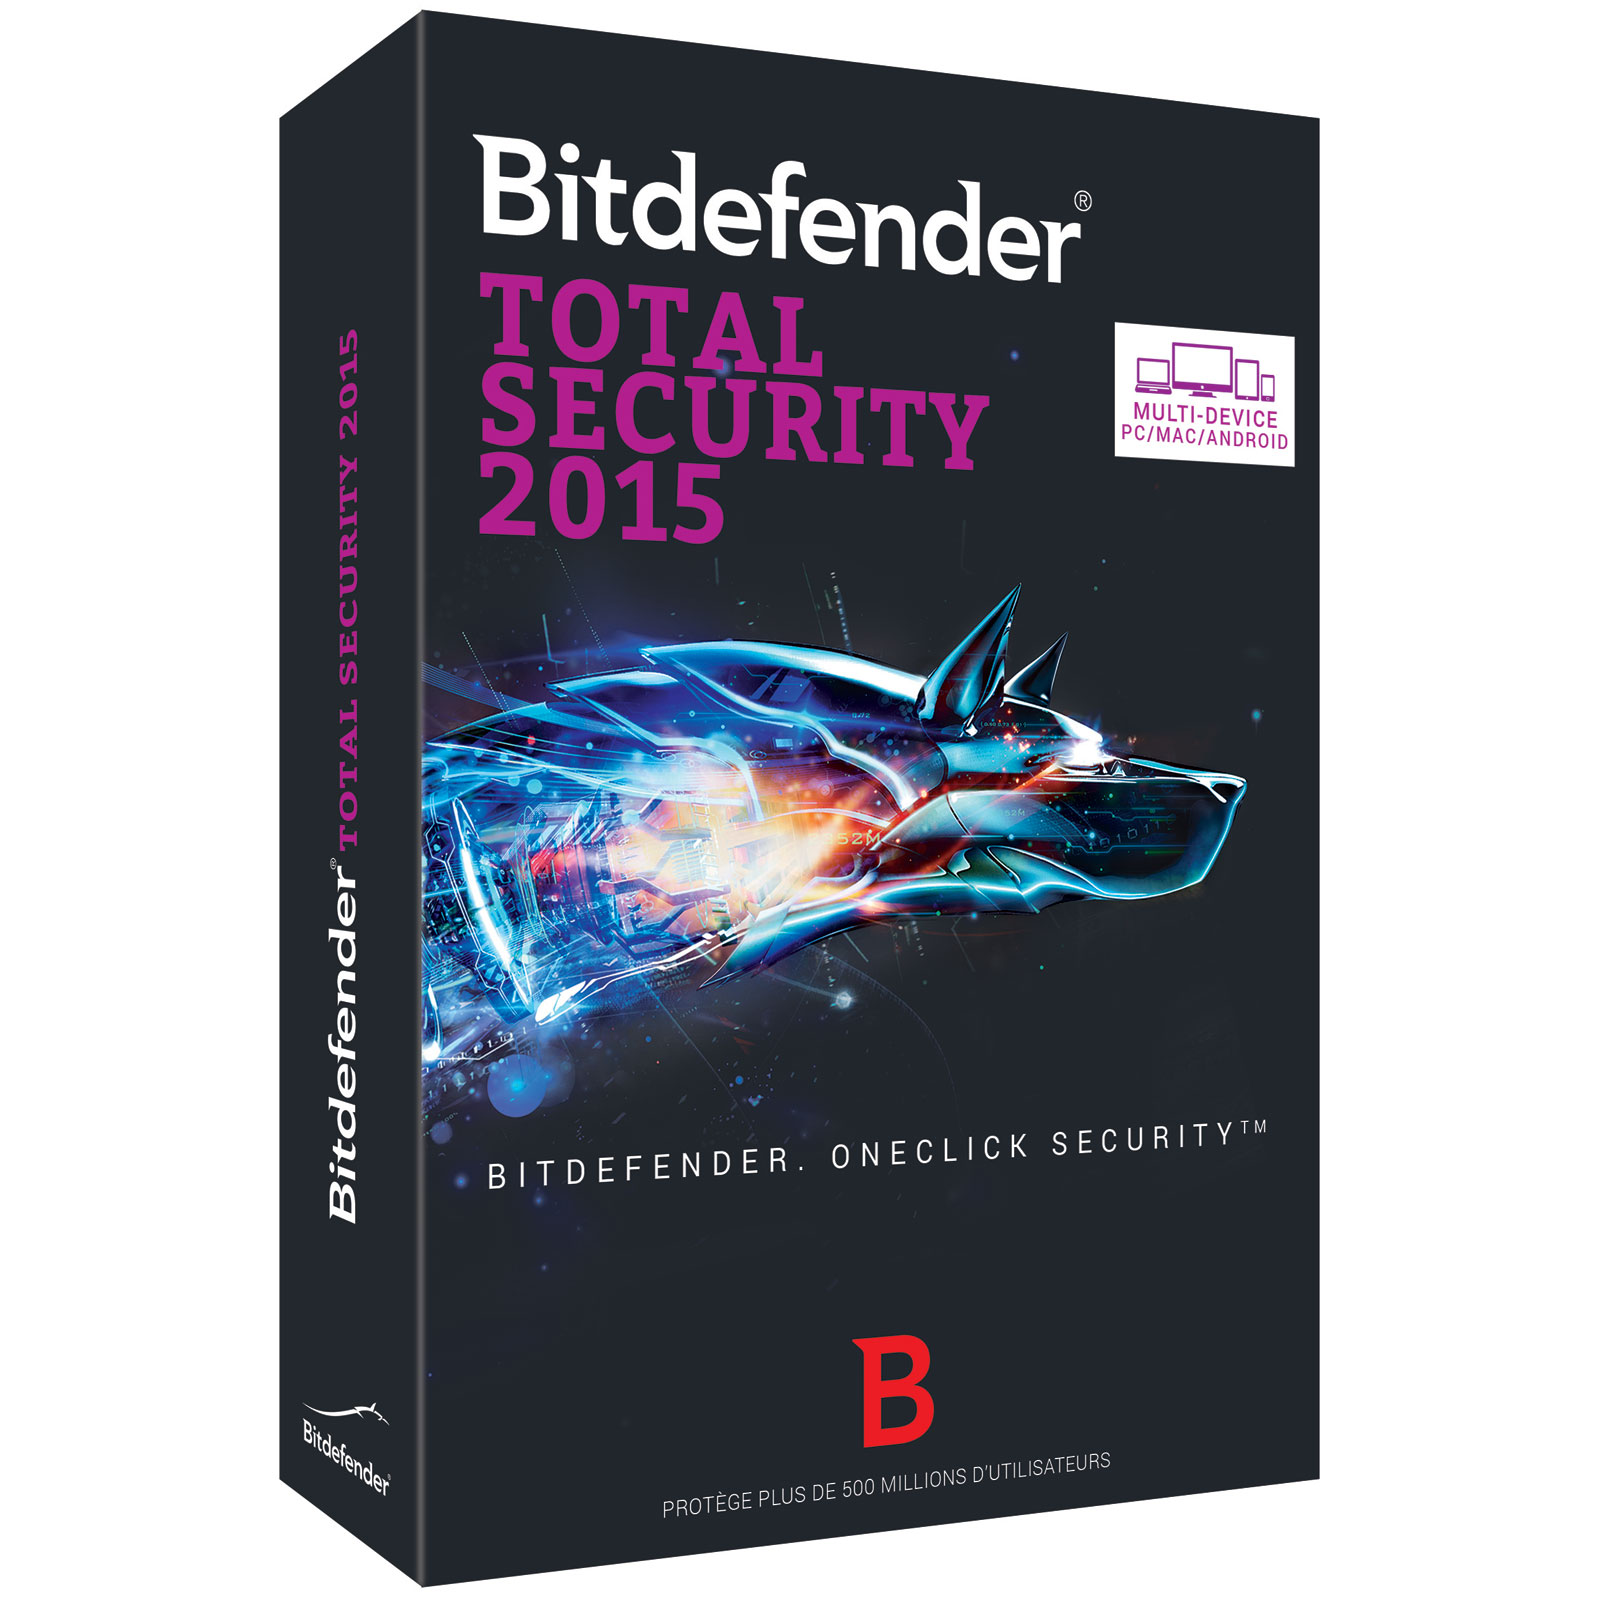 bitdefender total security photos images and wallpapers. Black Bedroom Furniture Sets. Home Design Ideas